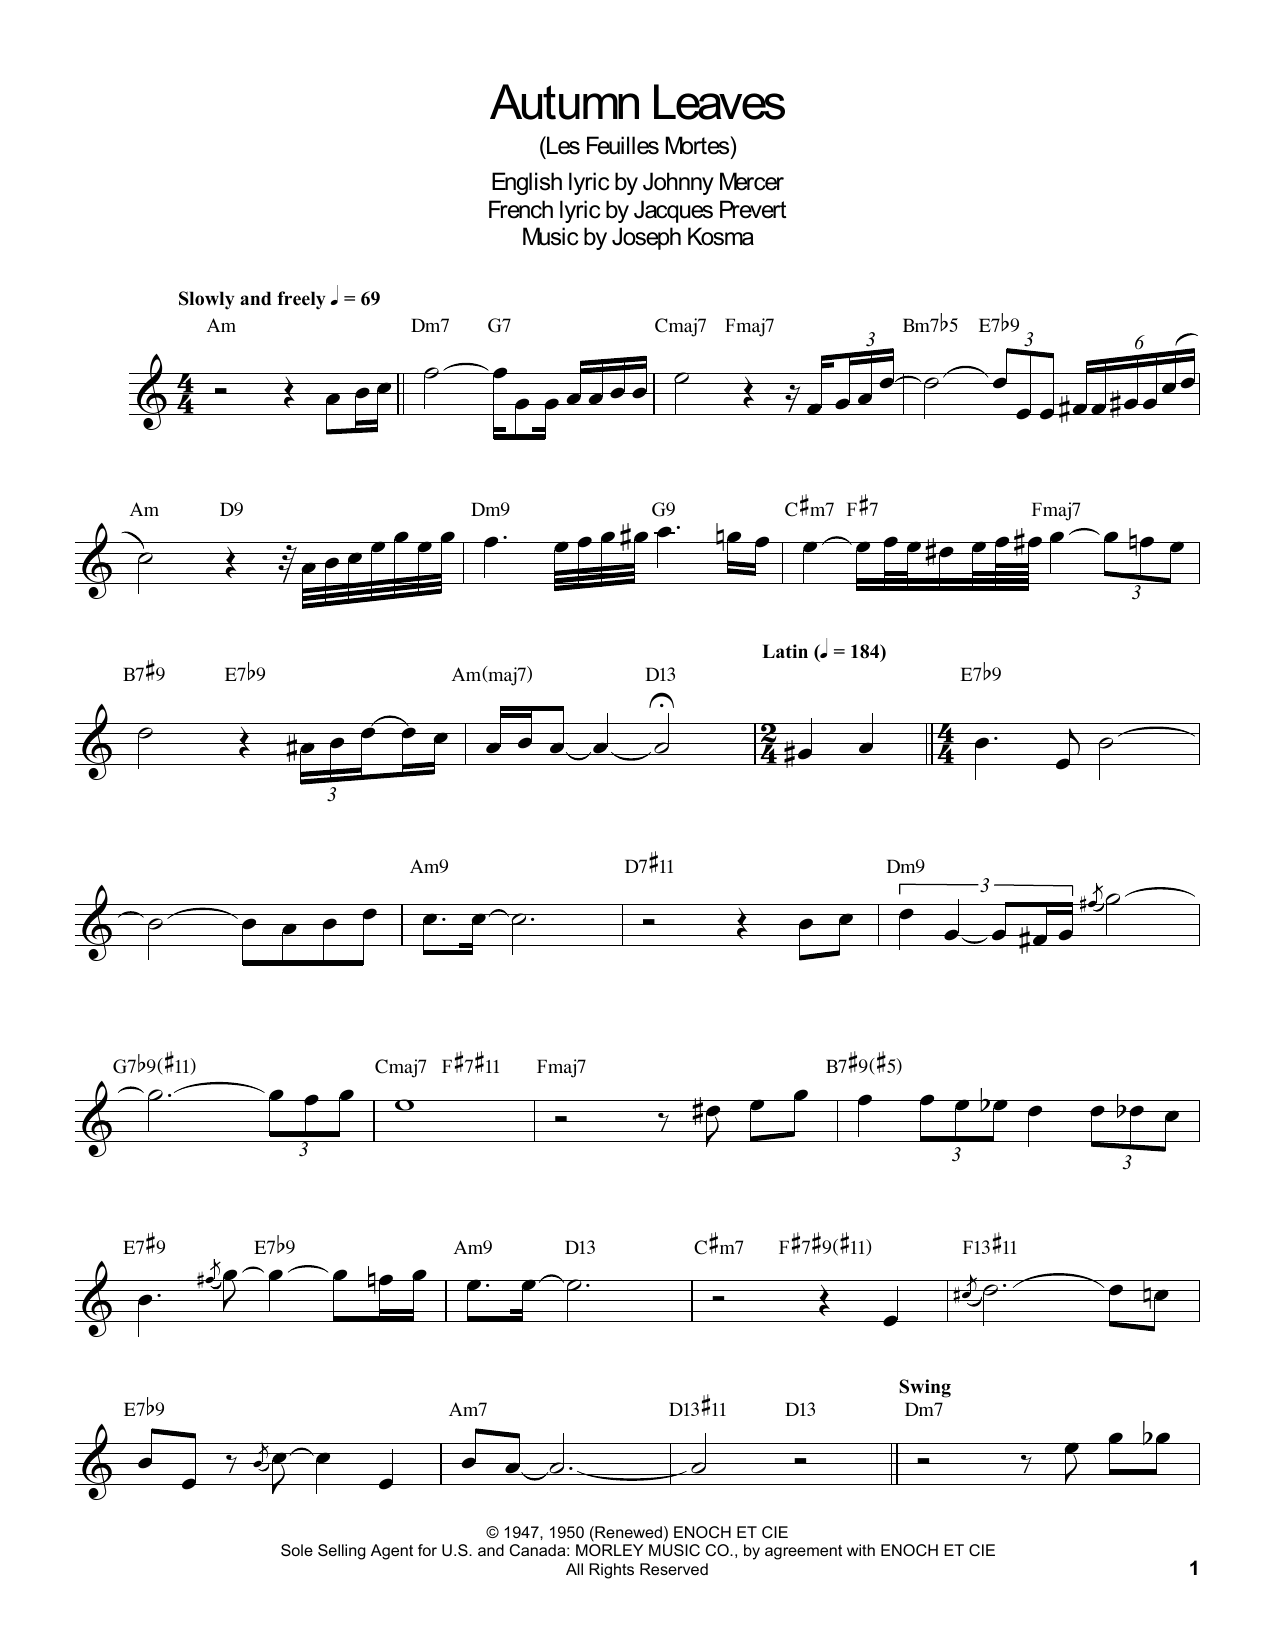 Autumn Leaves by Buddy DeFranco Clarinet Transcription Digital Sheet Music